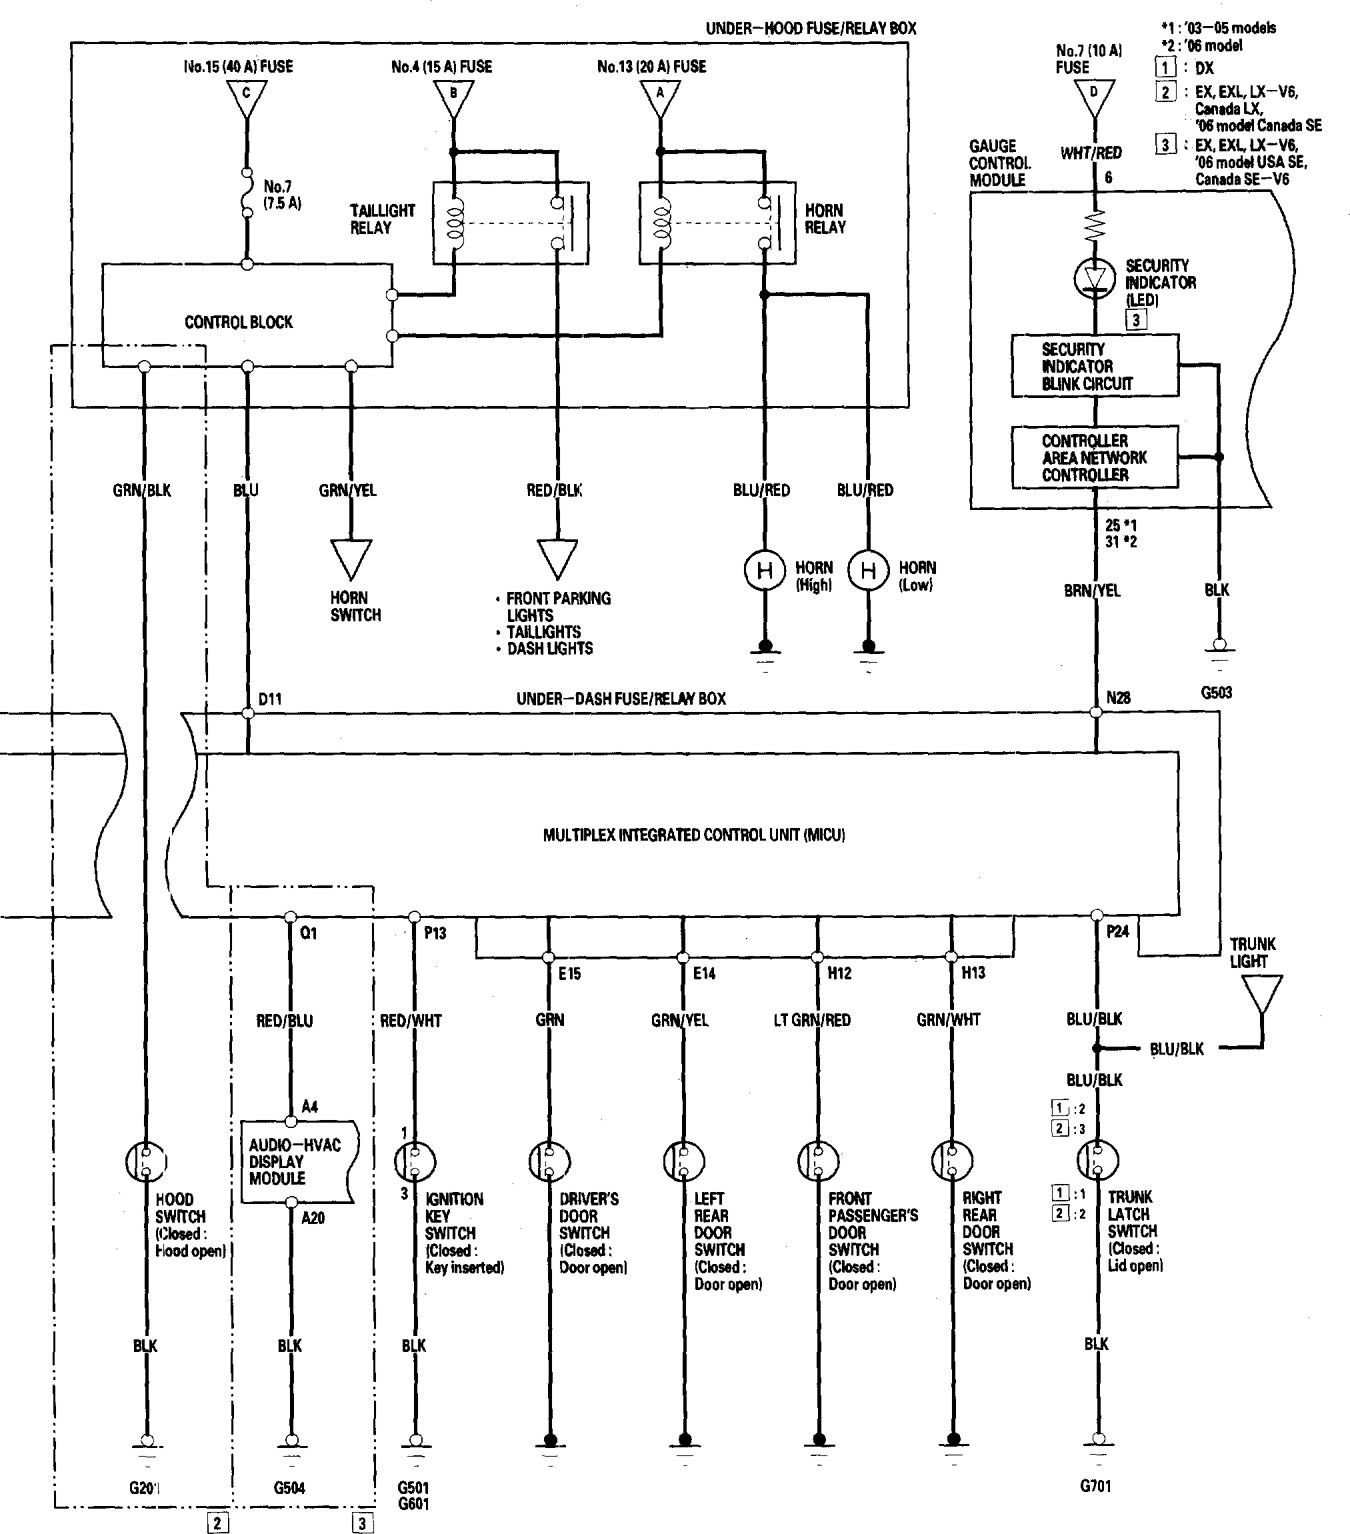 2006 honda accord wiring diagram - wiring diagram rule-upgrade-a -  rule-upgrade-a.agriturismoduemadonne.it  agriturismoduemadonne.it